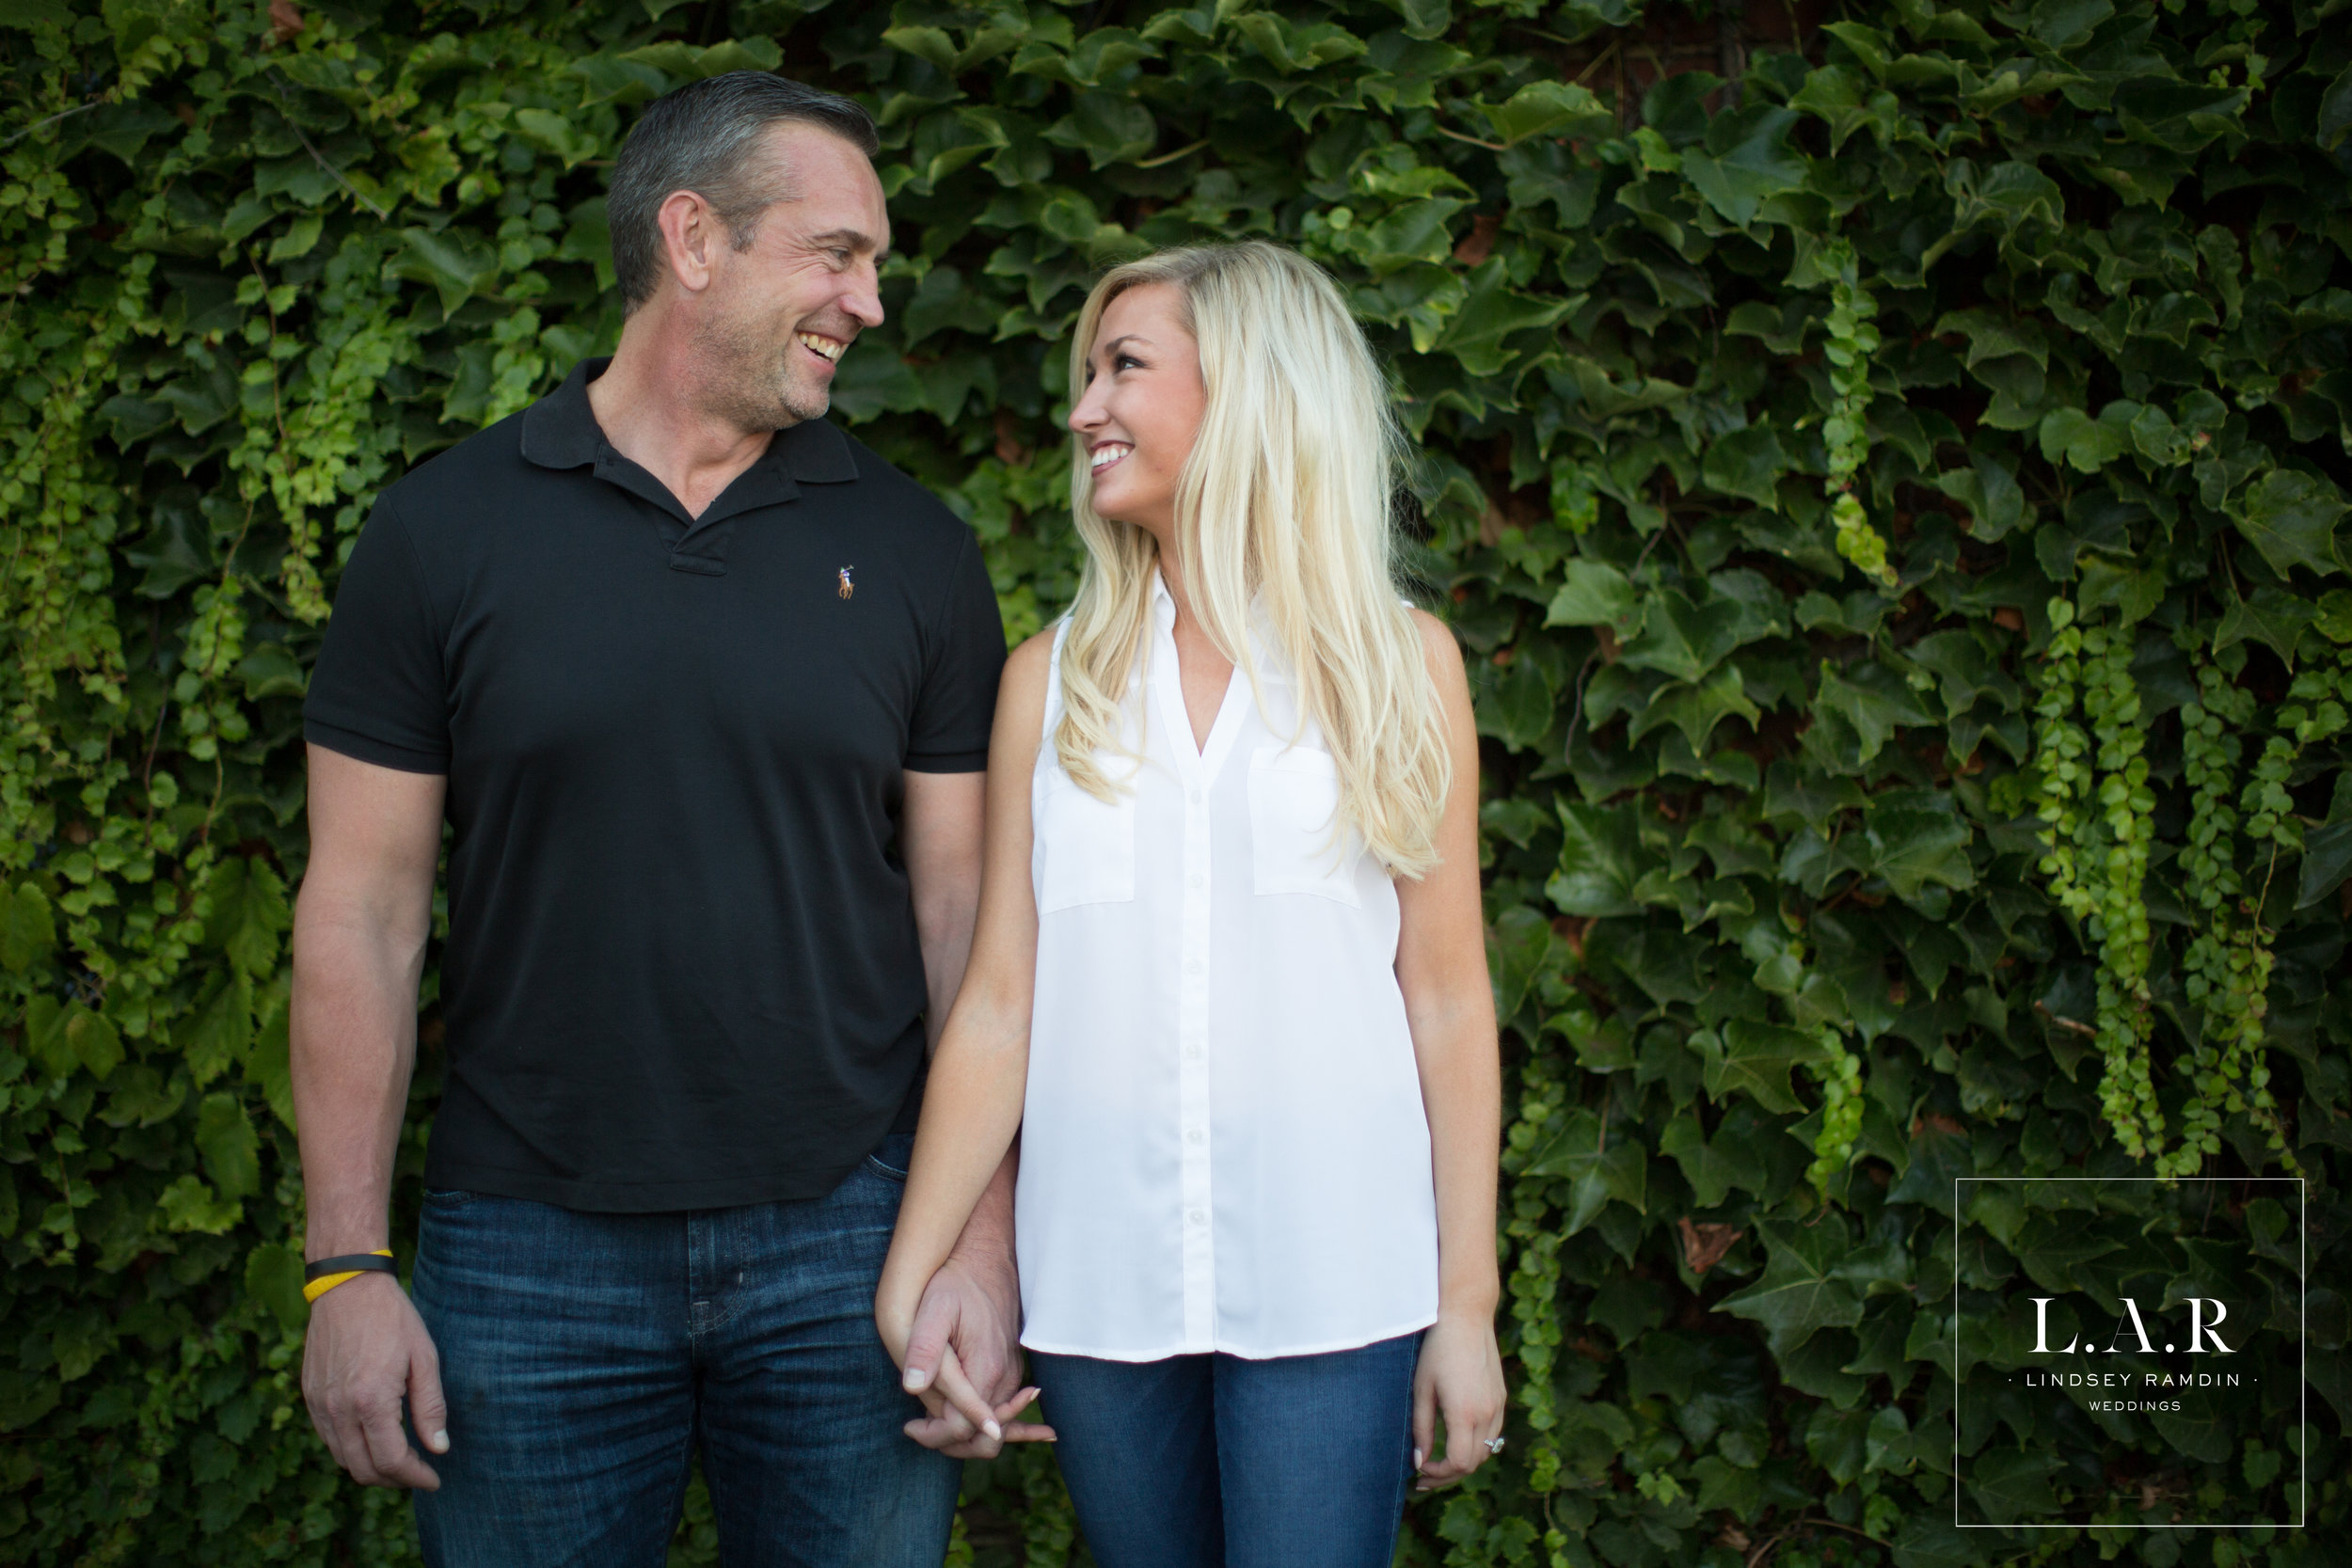 Downtown Youngstown Engagement Session   L.A.R. Weddings